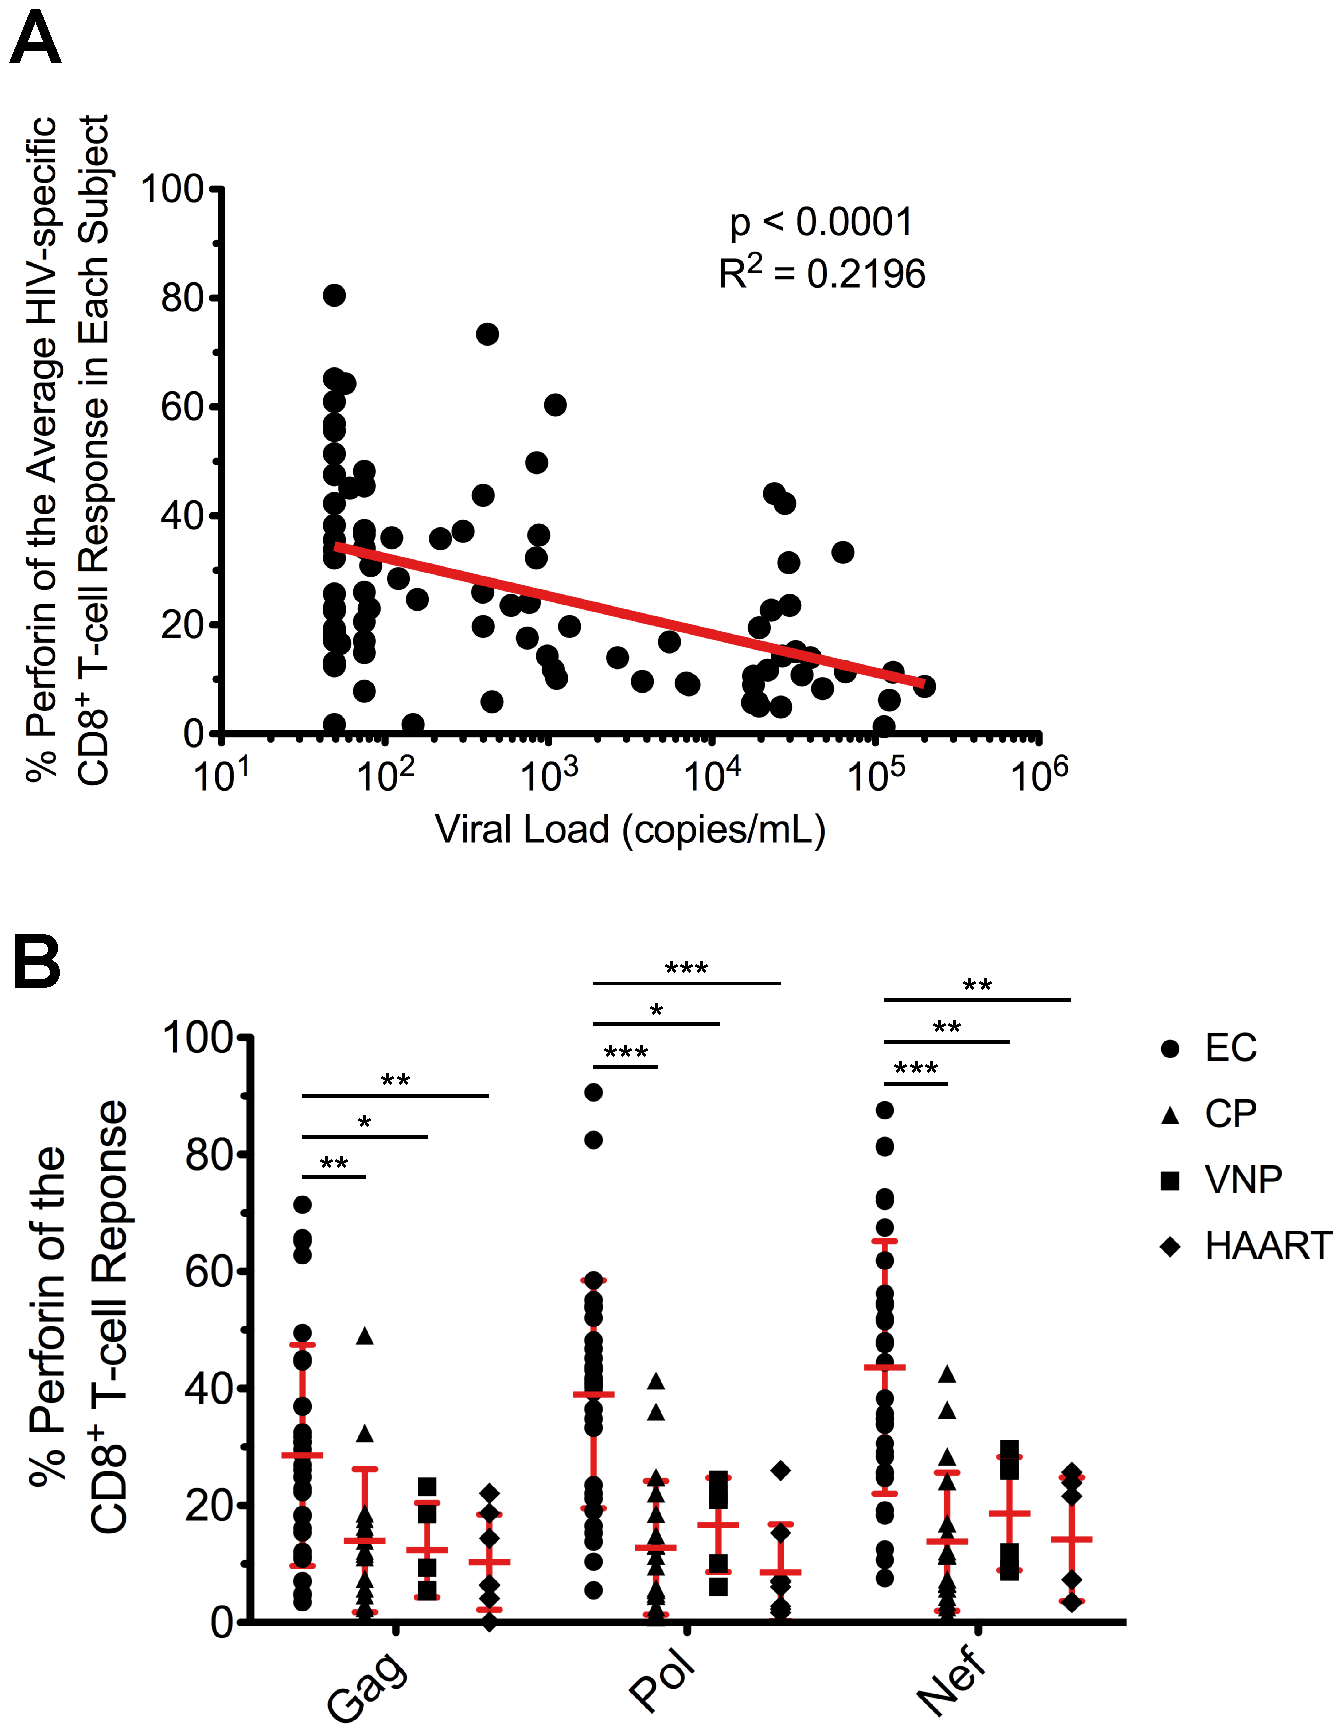 Inverse relationship between viral load and HIV-specific perforin expression, which is not rescued by HAART.